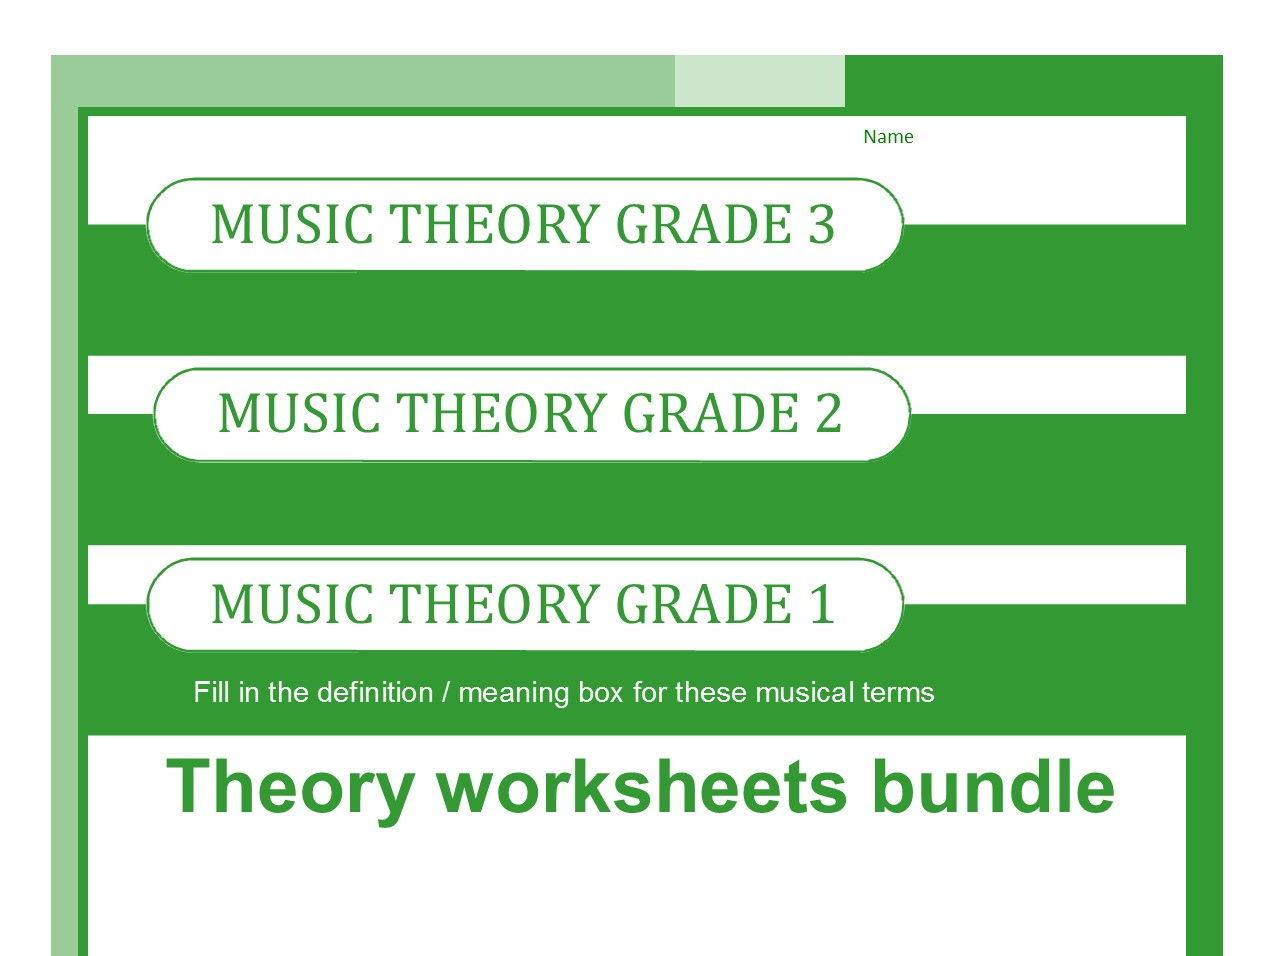 worksheet Theory Worksheets music theory worksheets for grades one two and three by sparkhallo teaching resources tes